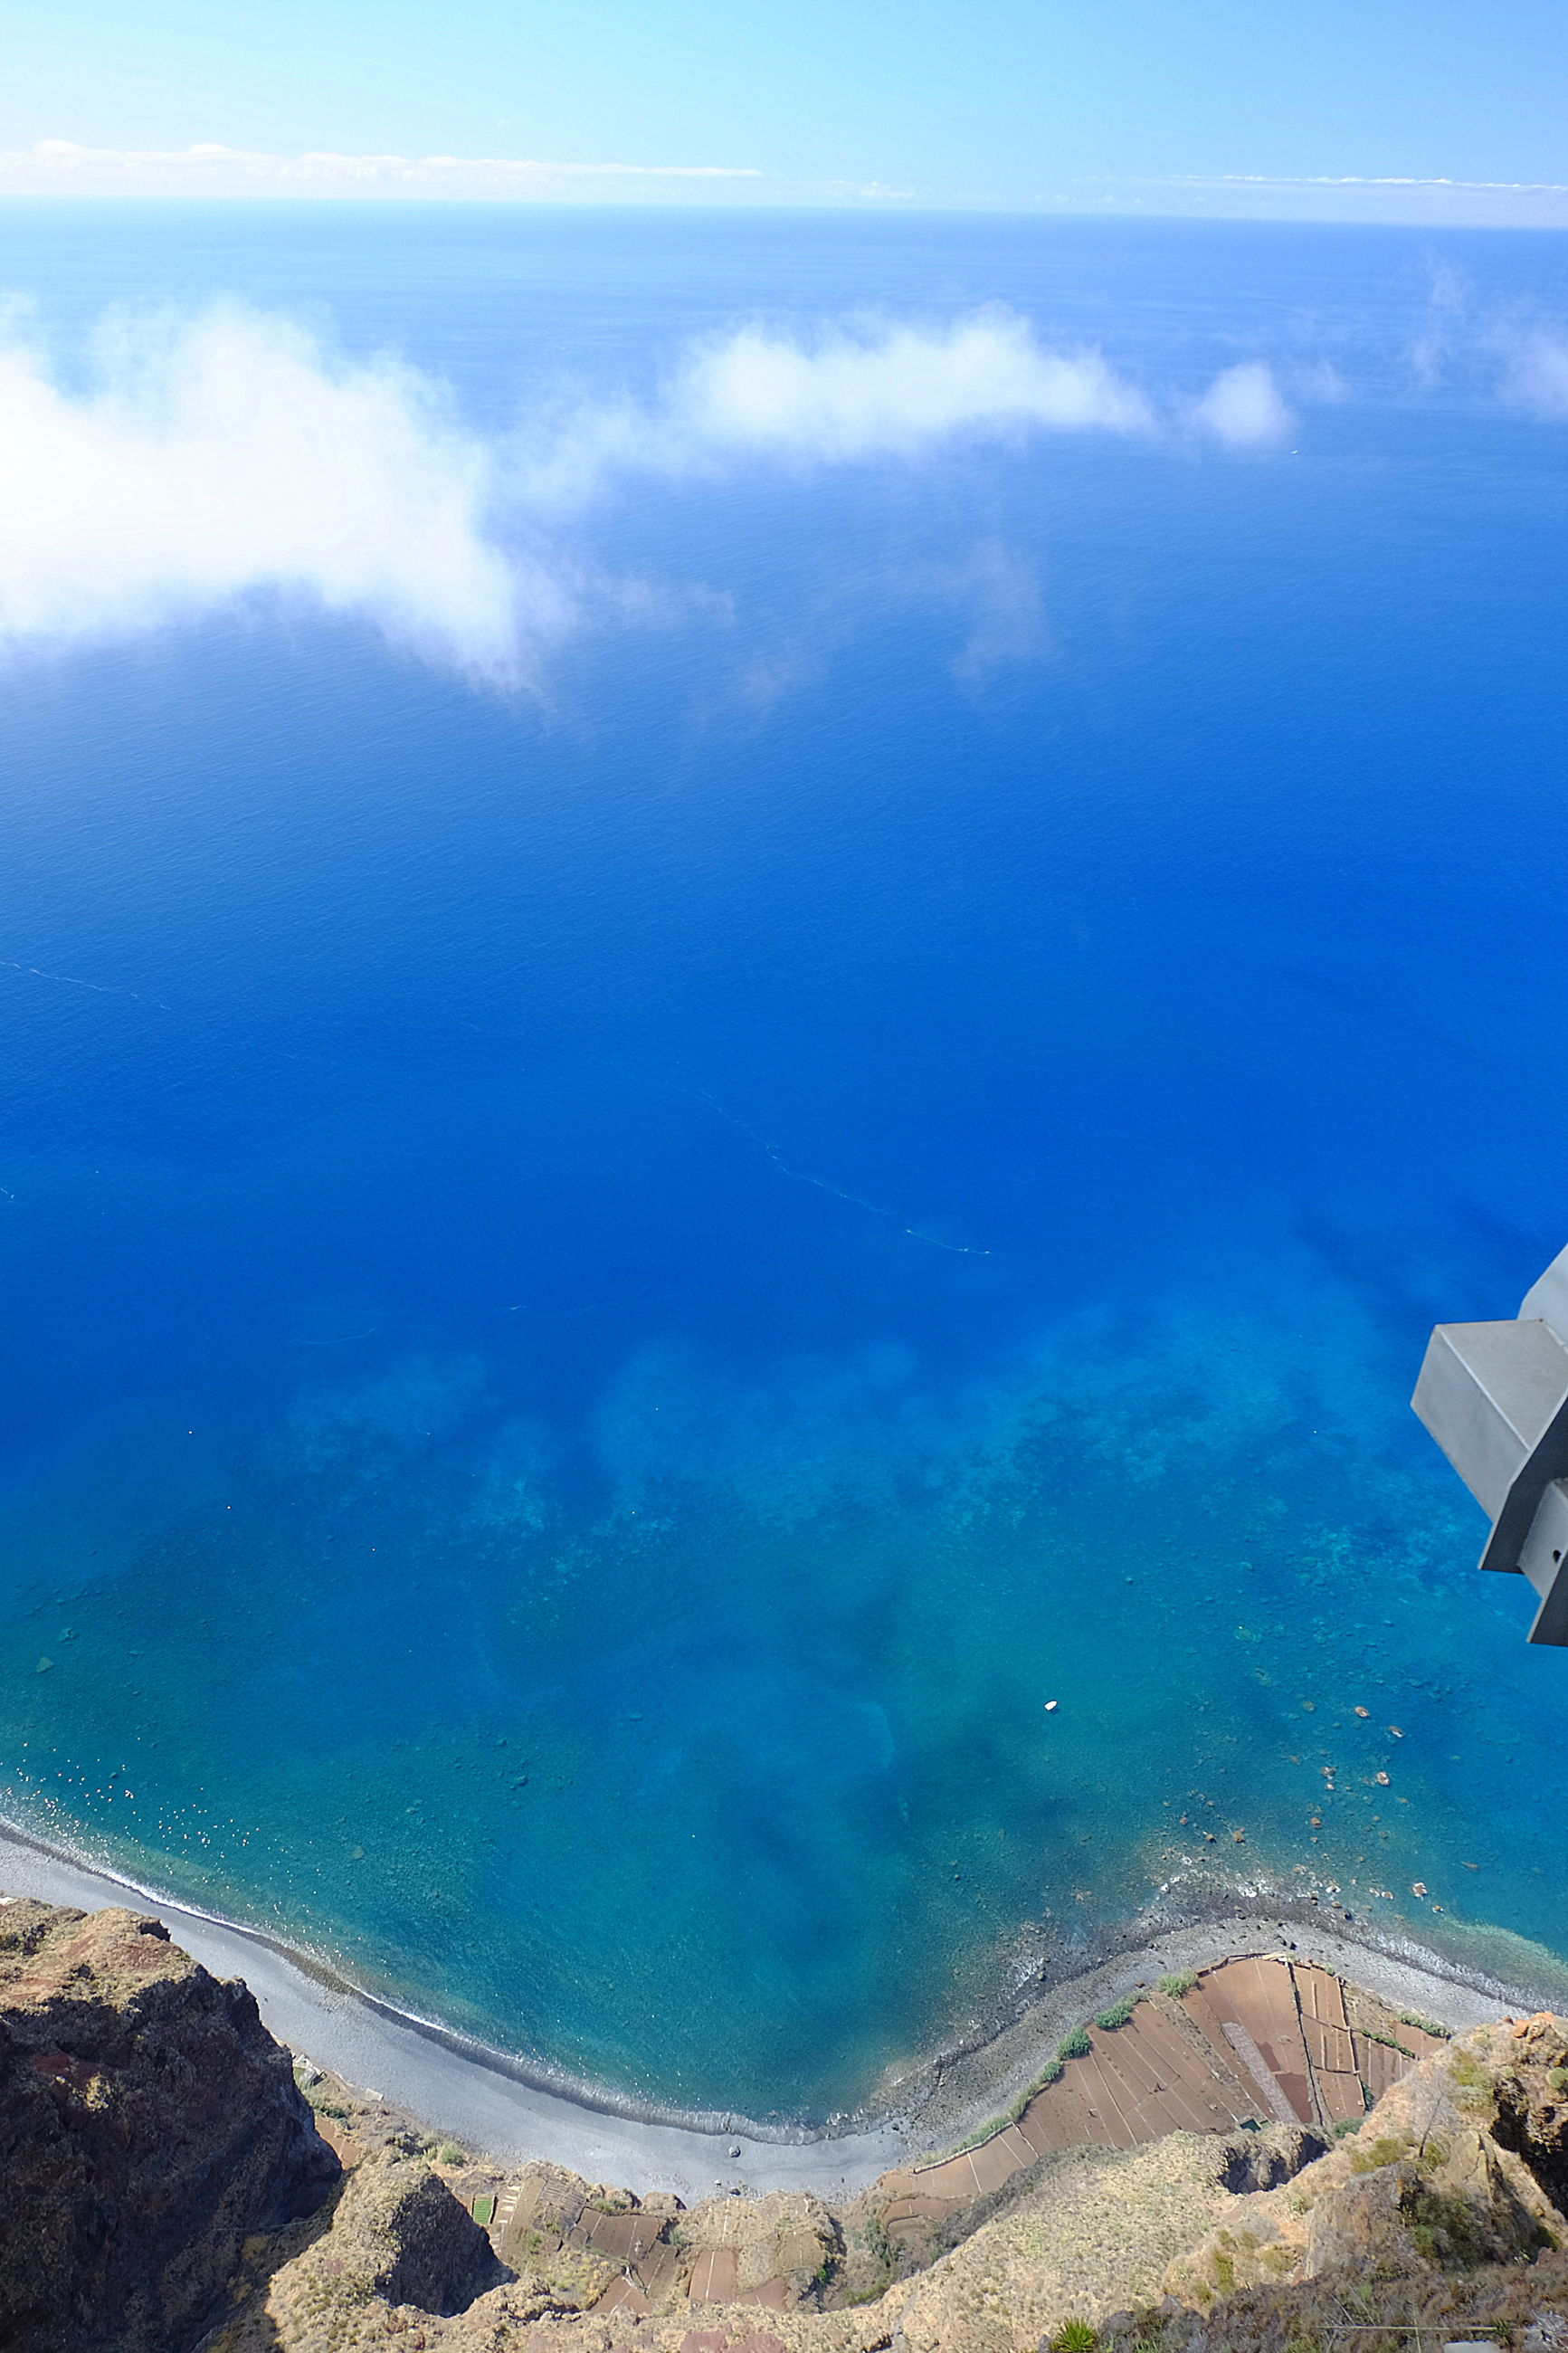 water, sea, scenics - nature, beauty in nature, blue, cloud - sky, nature, tranquil scene, sky, idyllic, day, tranquility, aerial view, no people, land, travel, beach, outdoors, island, turquoise colored